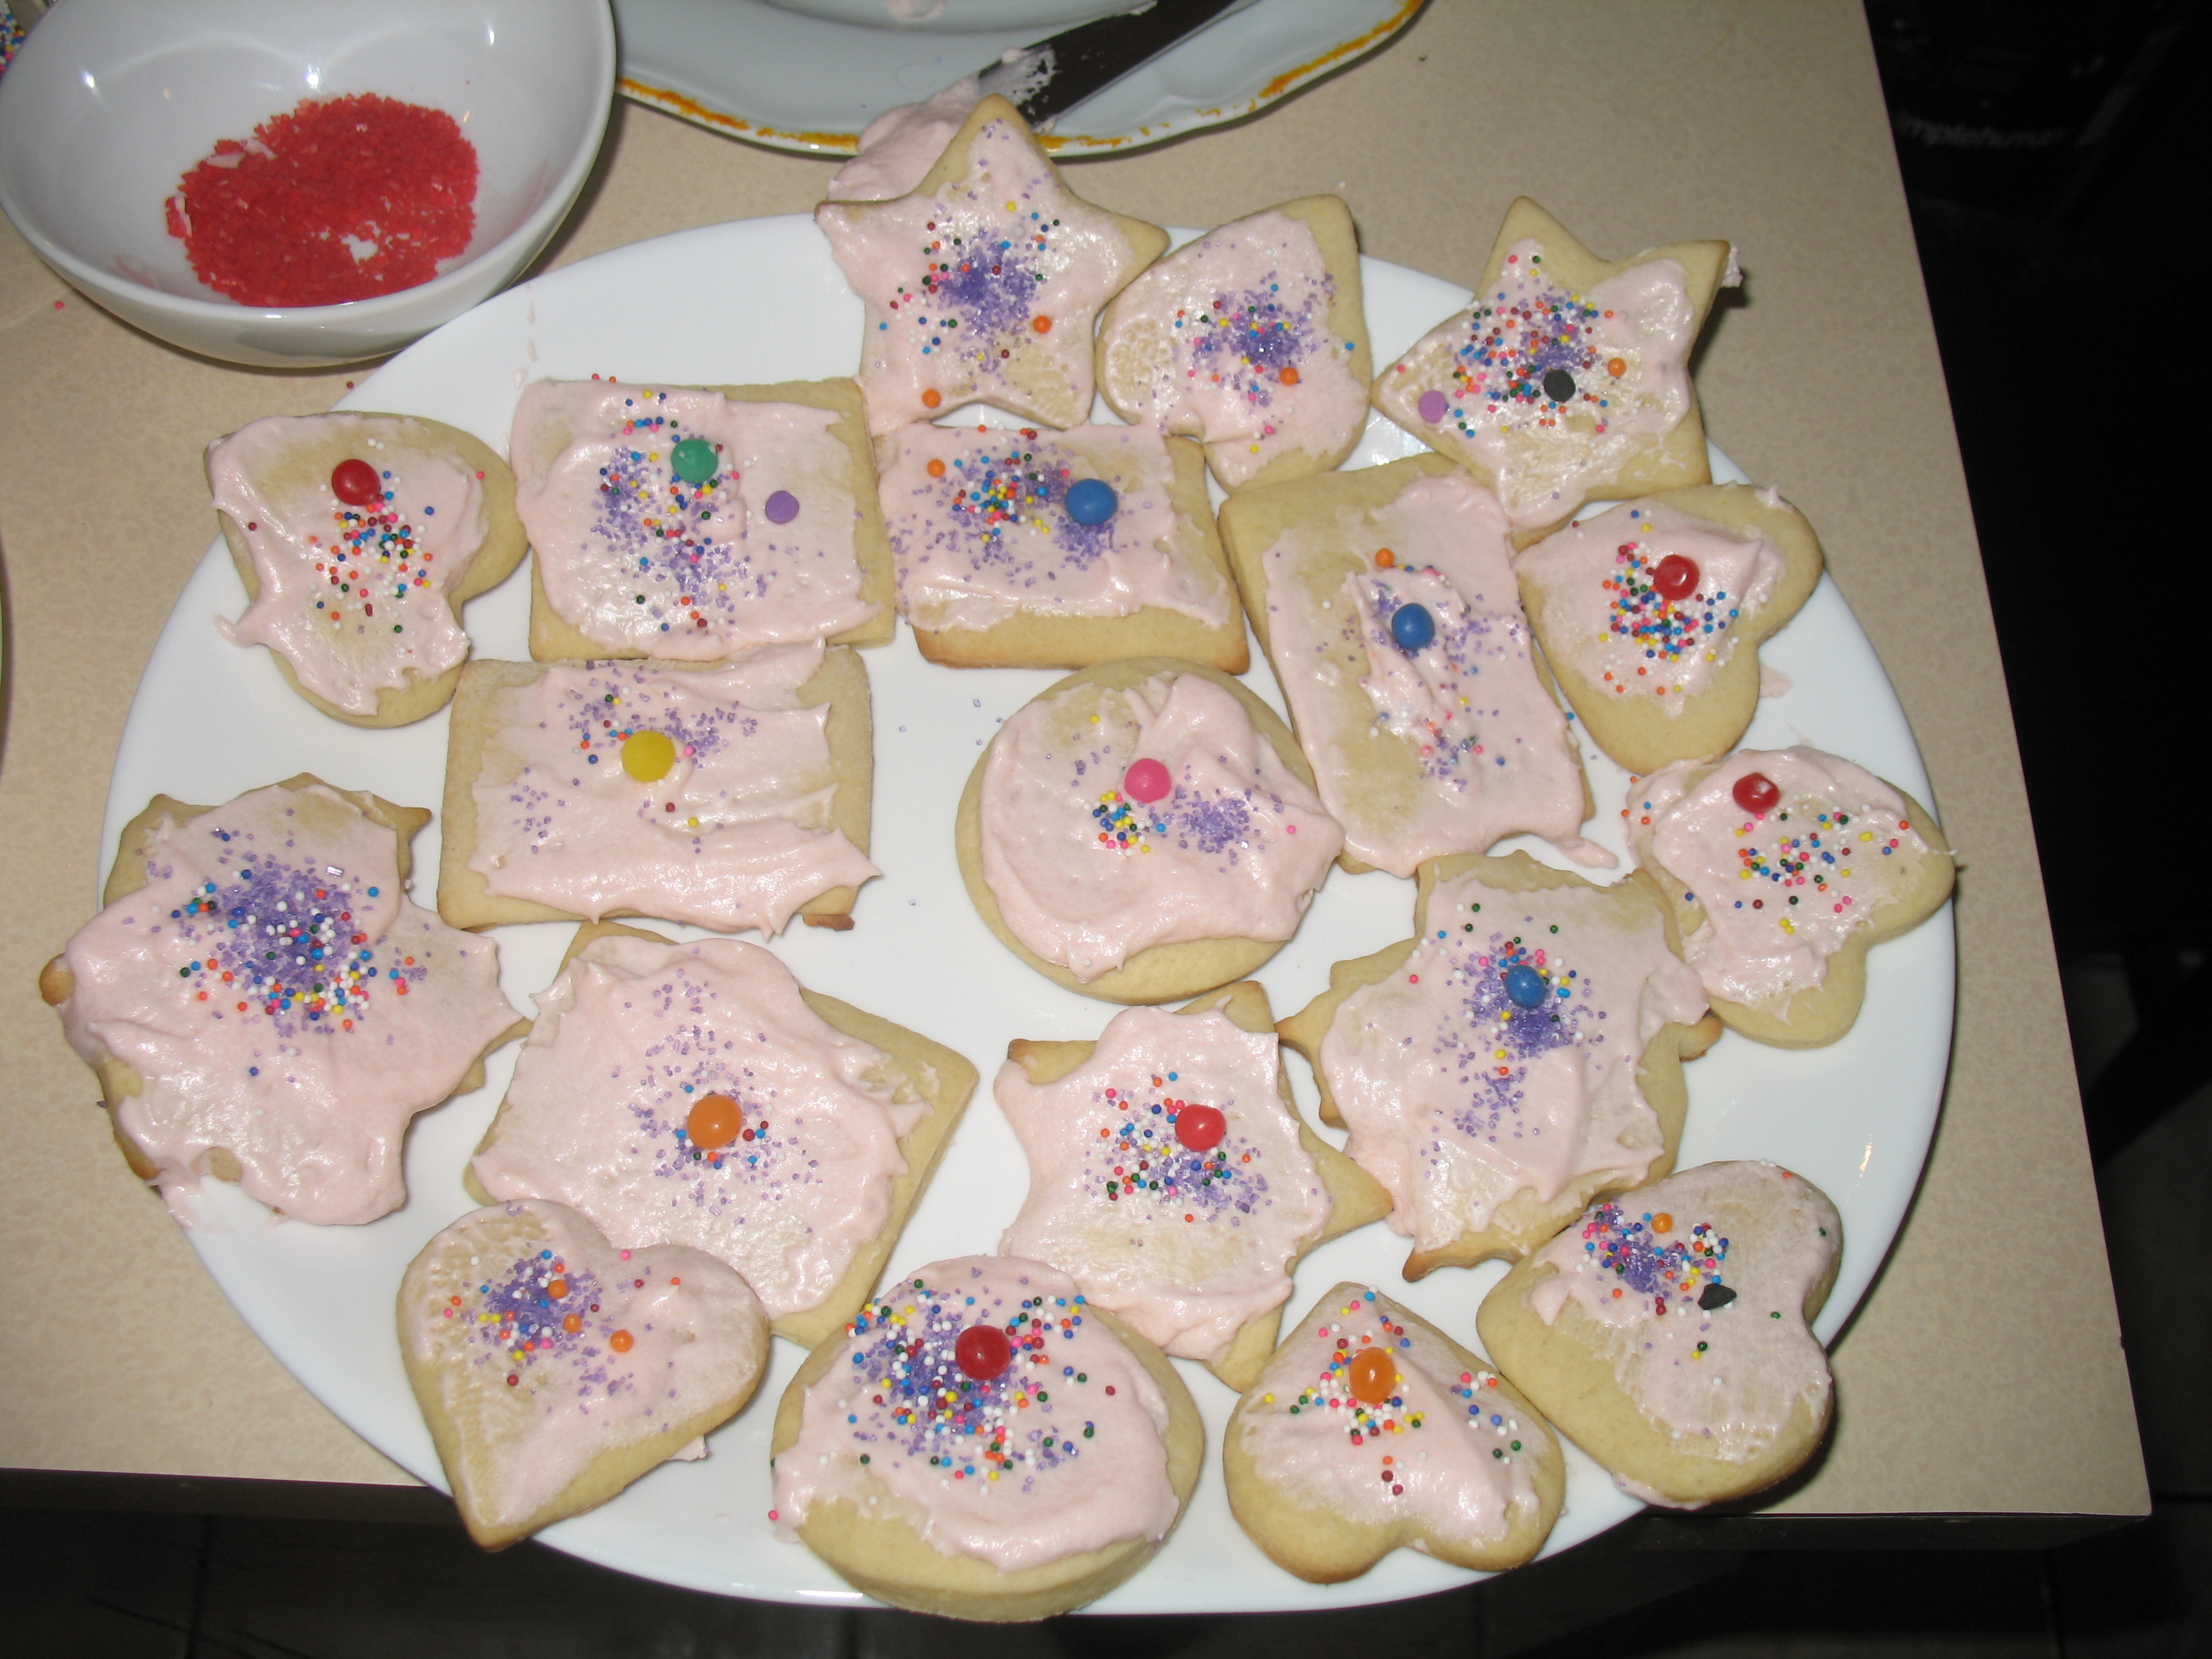 Nathaniel's cookies